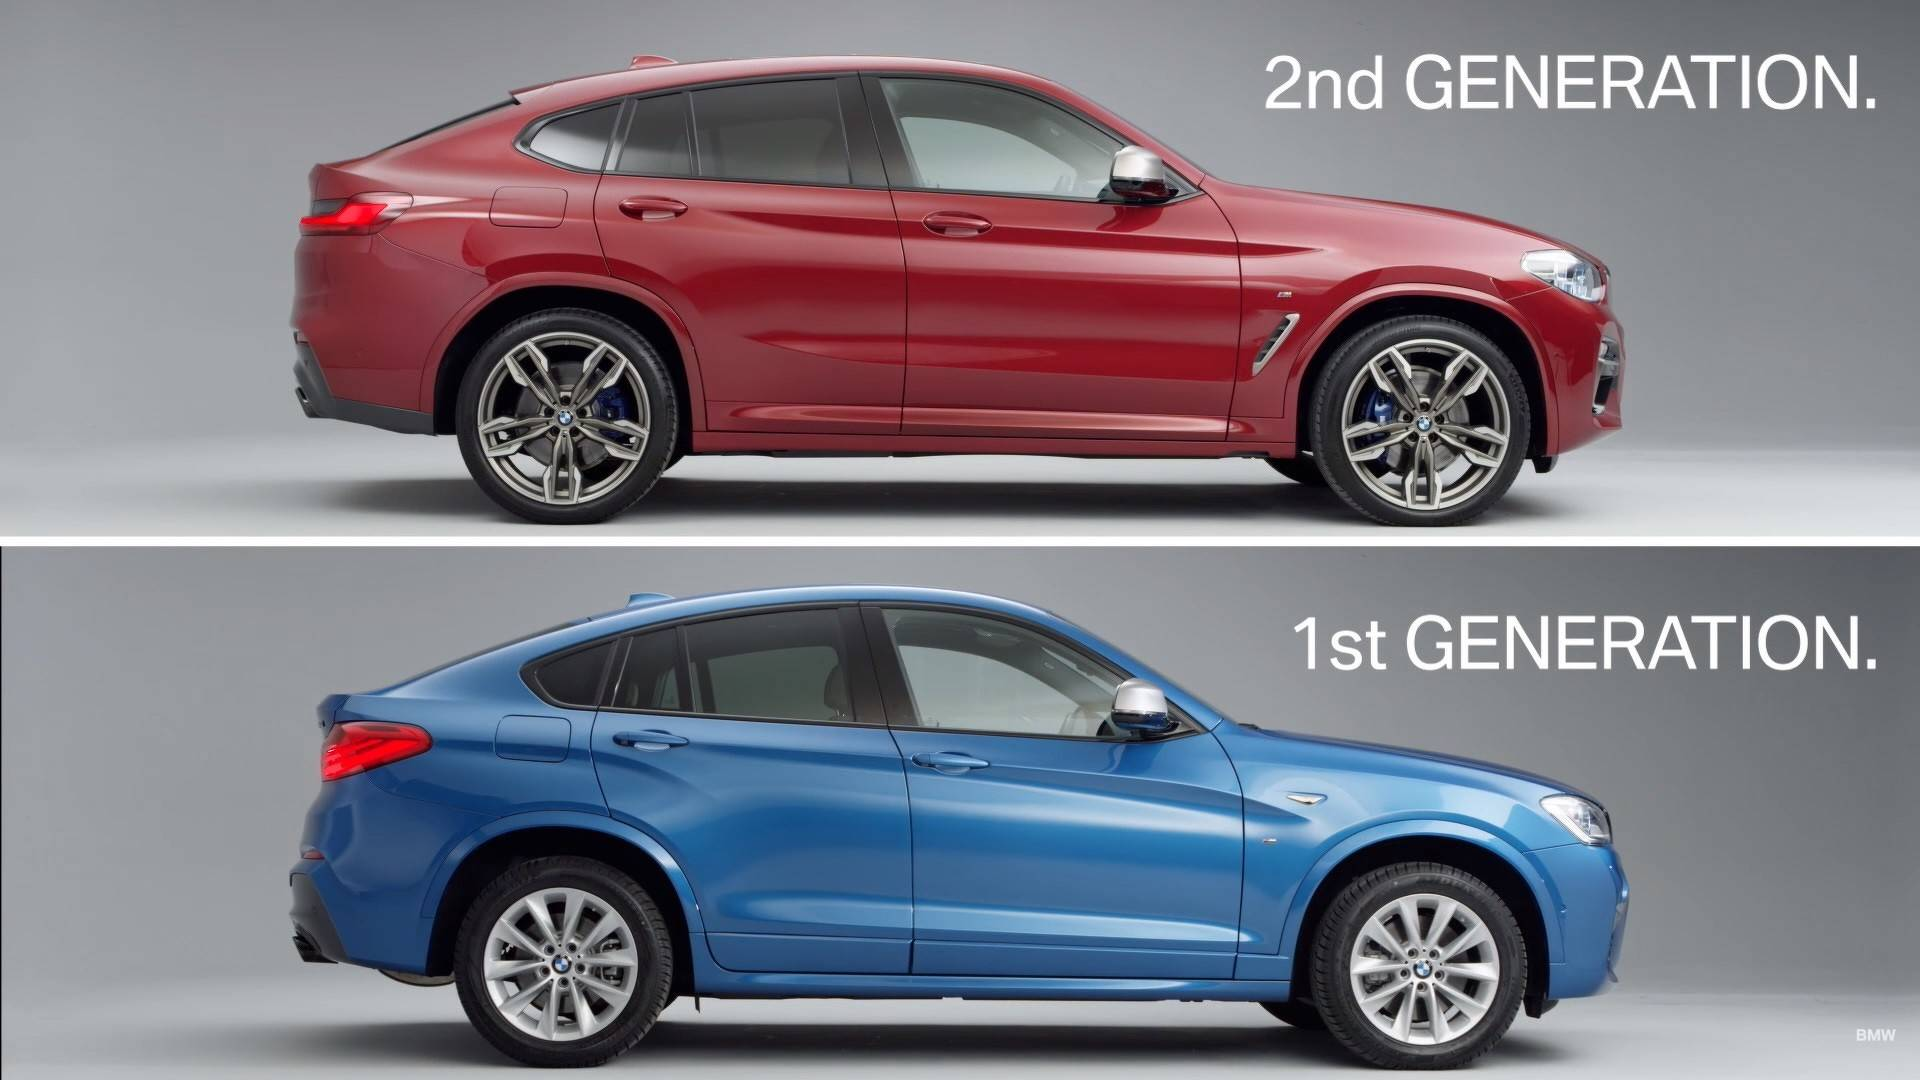 2019 Bmw X4 Compared To Old Model In Official Video